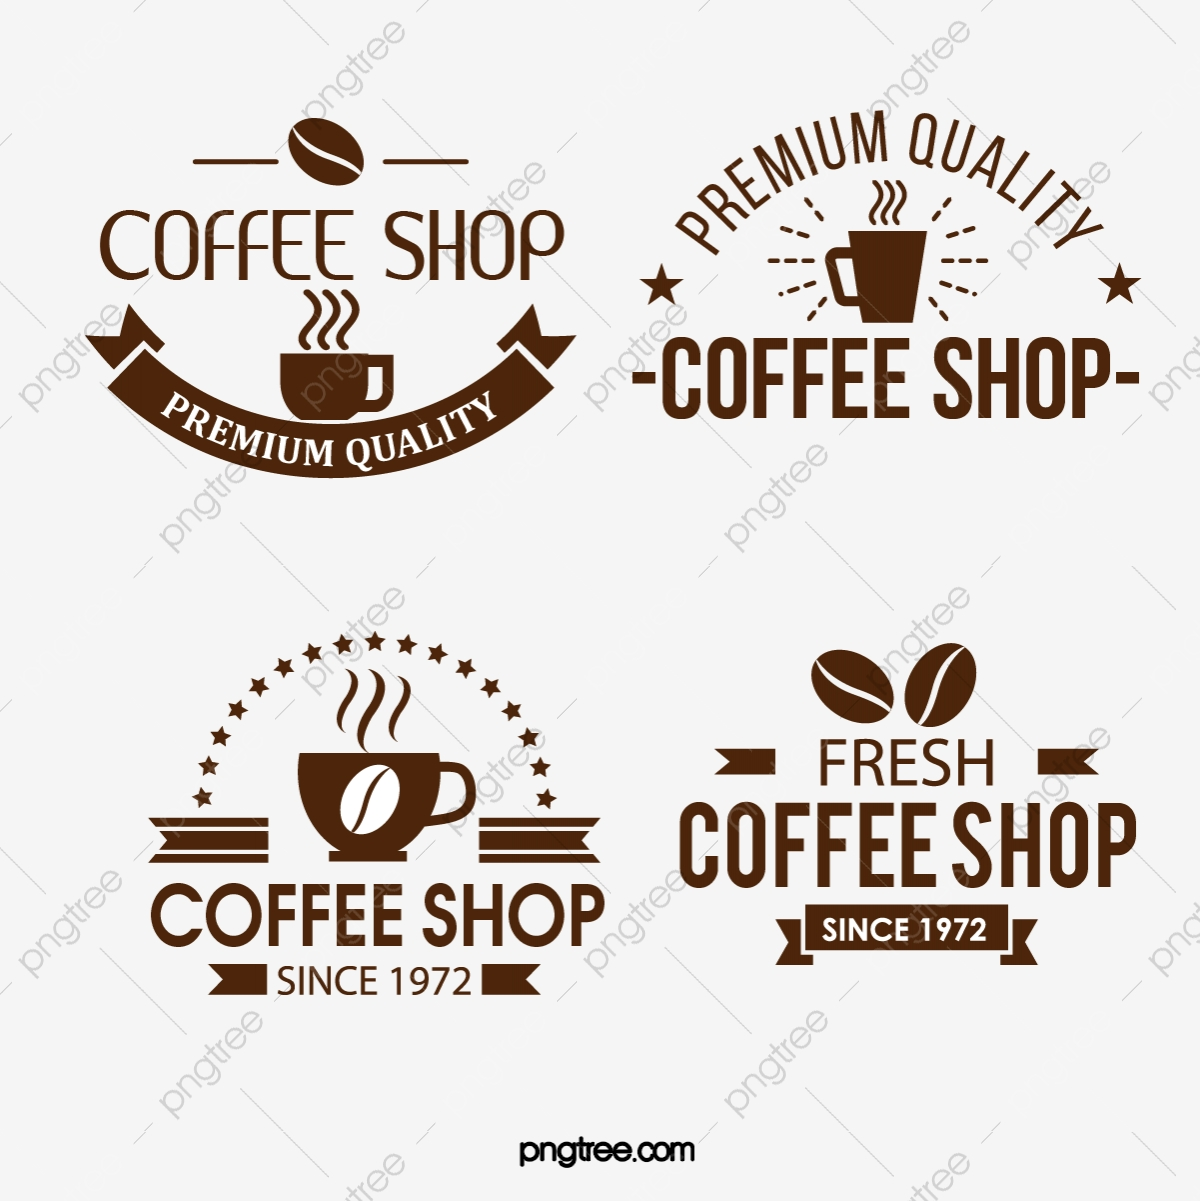 Vintage Fashion Brown Creative Coffee Shop Logo Coffee Art Word Logo Vintage Fashion Brown Png And Vector With Transparent Background For Free Download